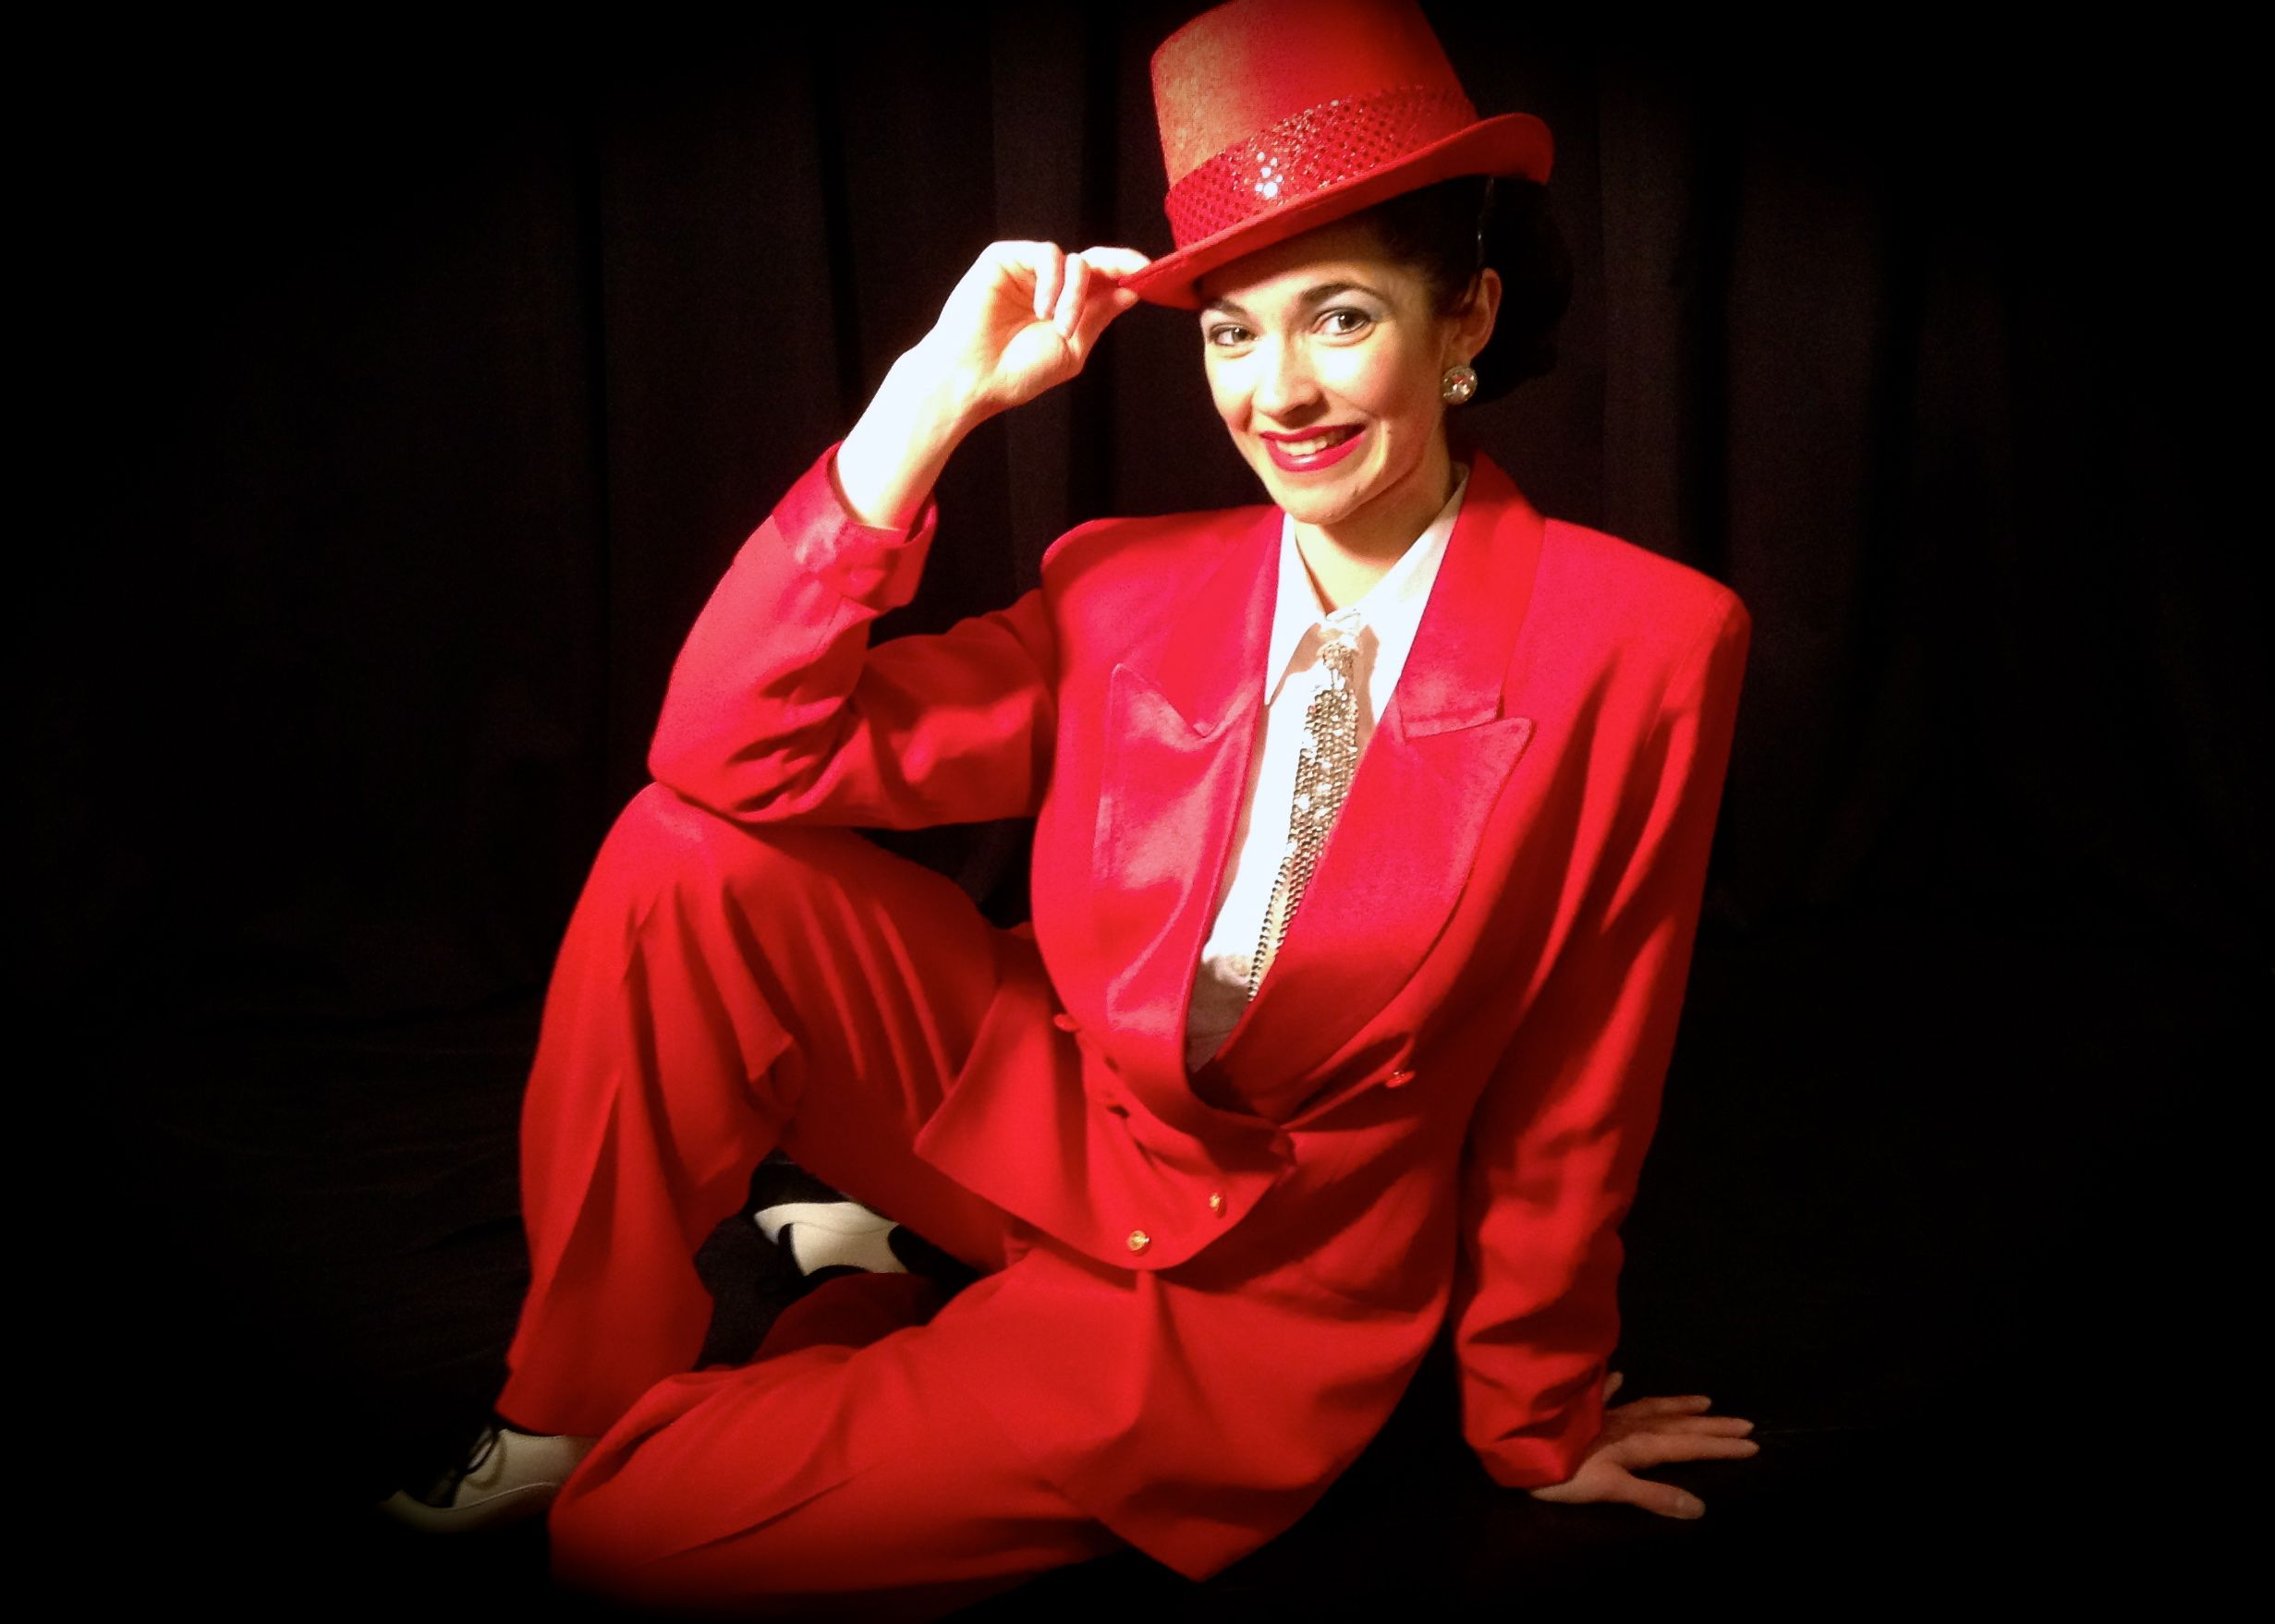 Red Tap Dance Tuxedo And Top Hat Featured In The Swing St Louis Show Worn With Black And White Wingtip Tap Shoes Book Christmas Fashion Fashion Tap Dance